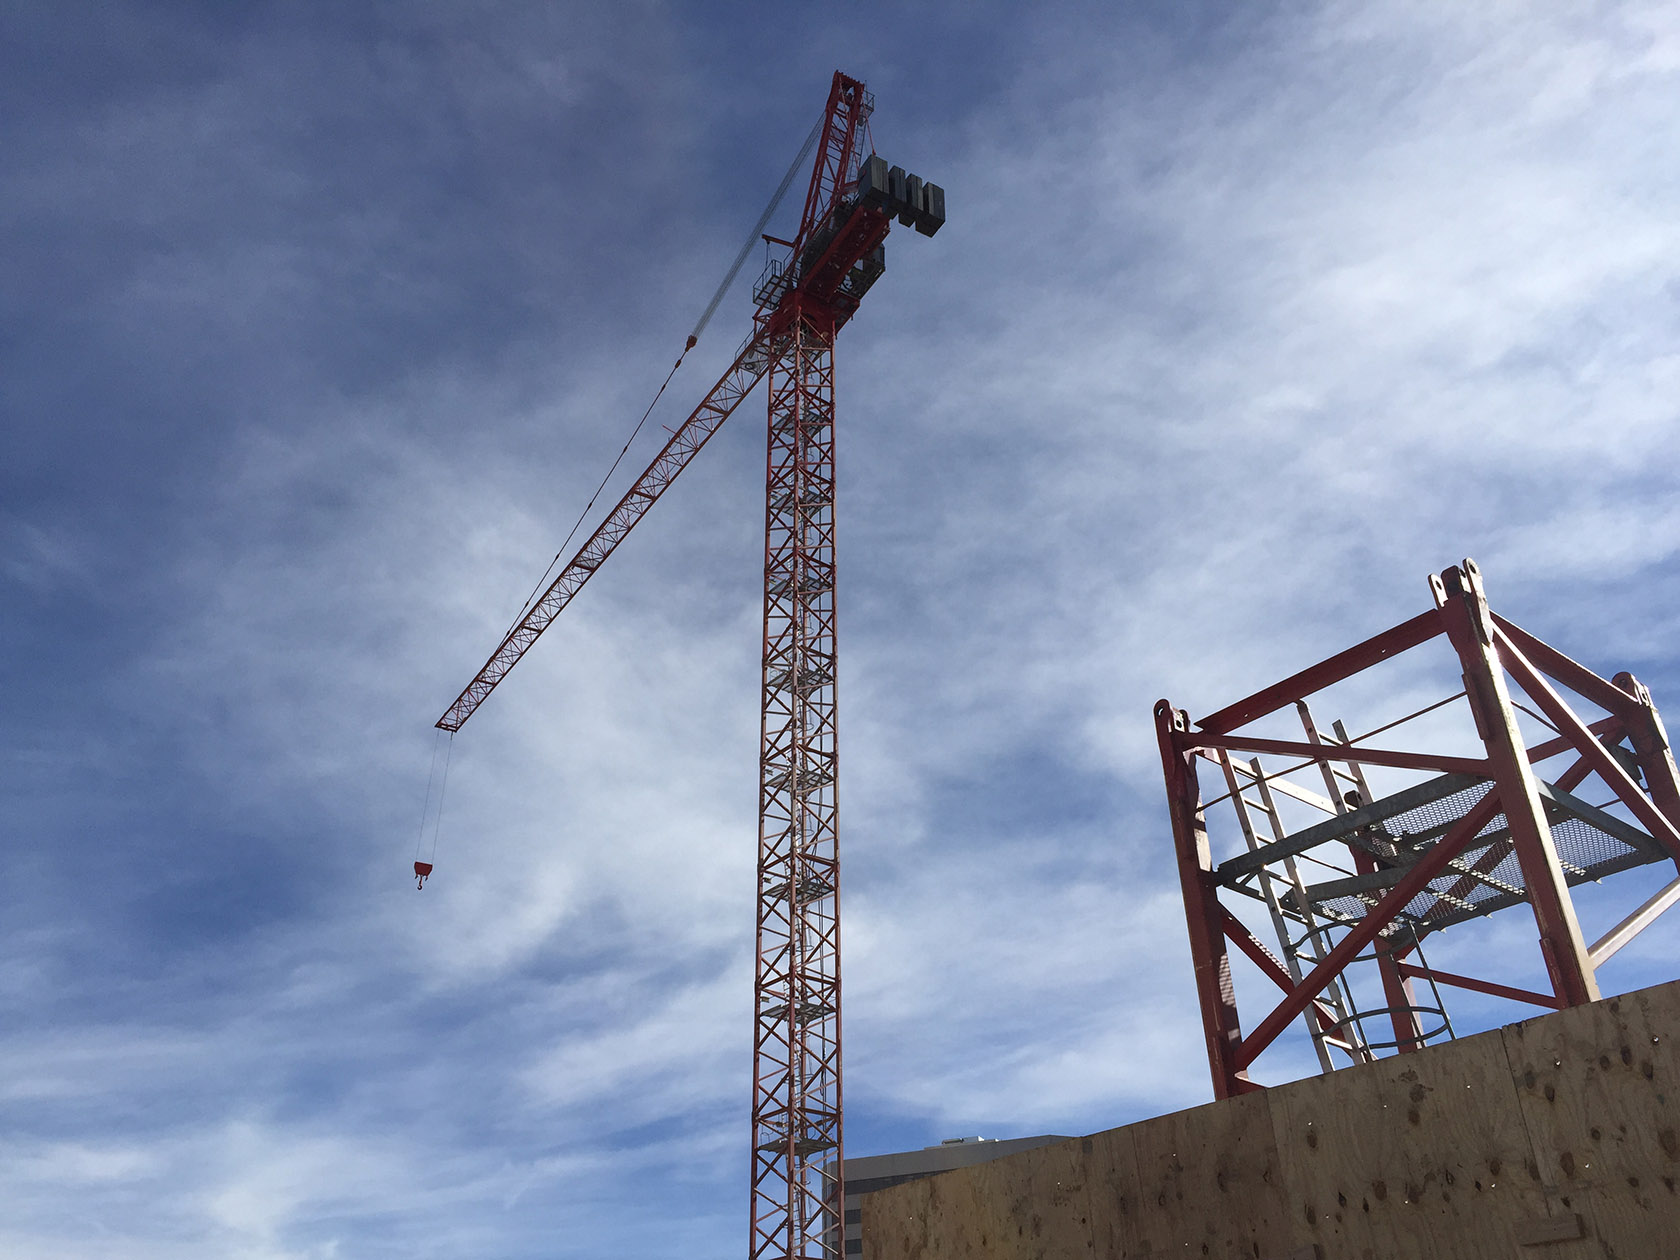 2017 0110 50Fifty Construction Update